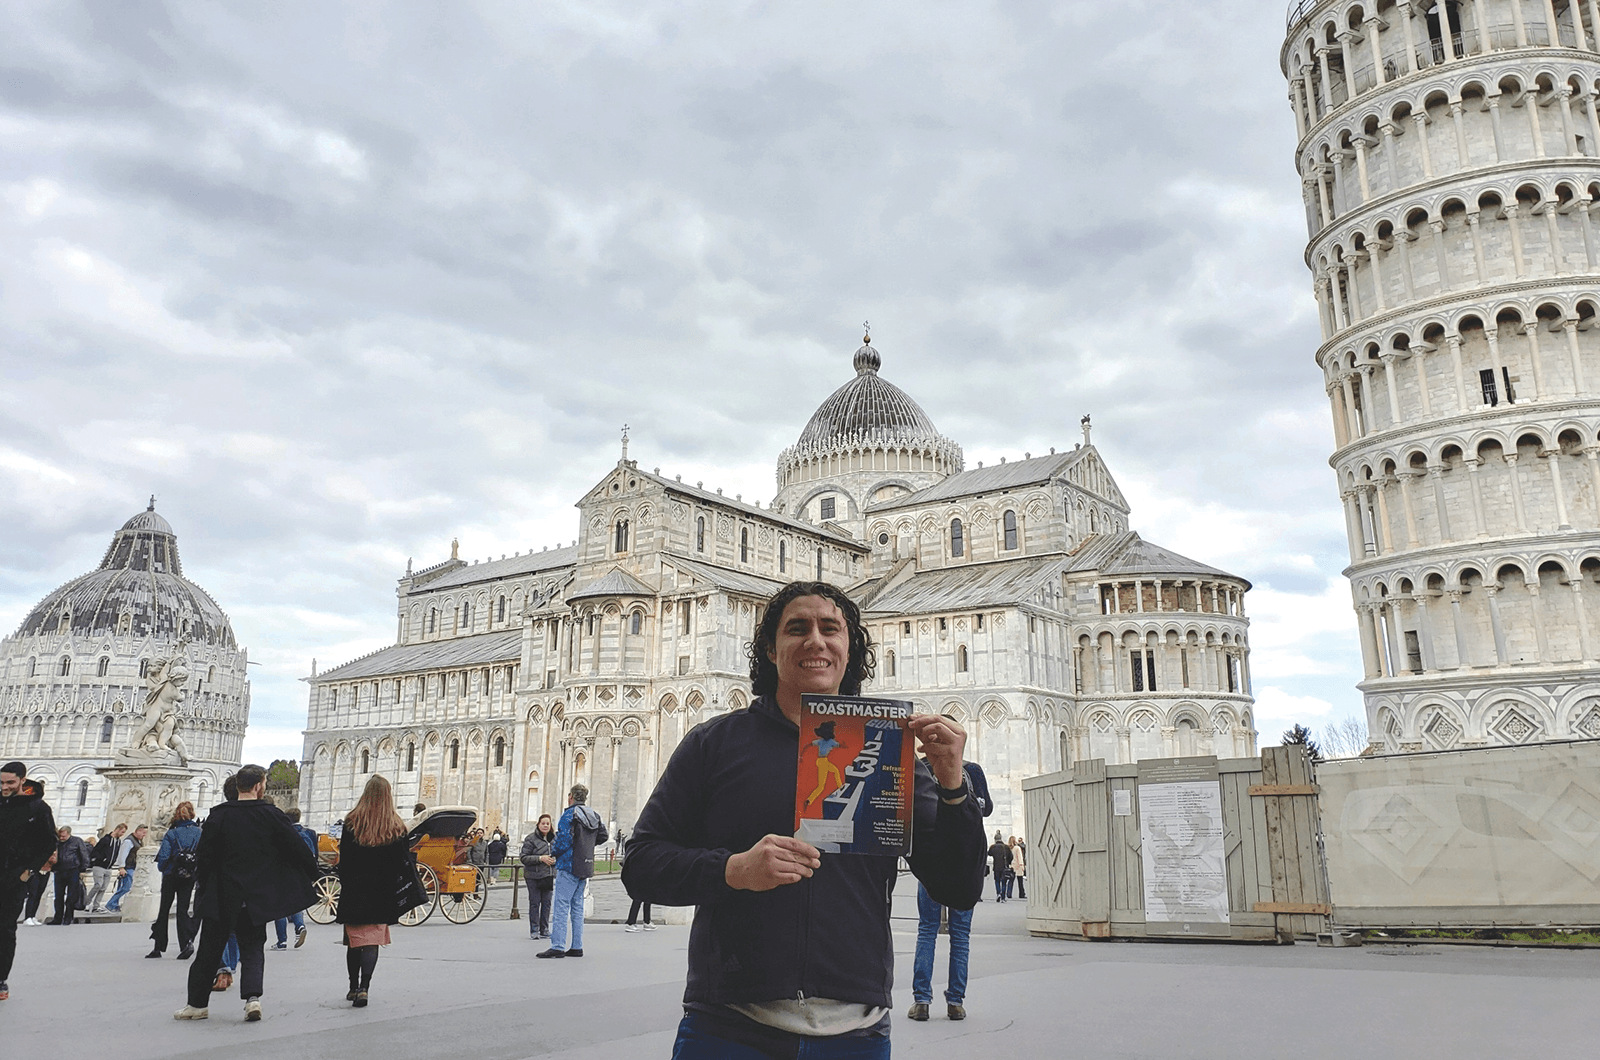 Angel Omar Sandval of Mesa, Arizona, stands in front of the Leaning Tower of Pisa and Piazza dei Miracoli in Pisa, Italy.